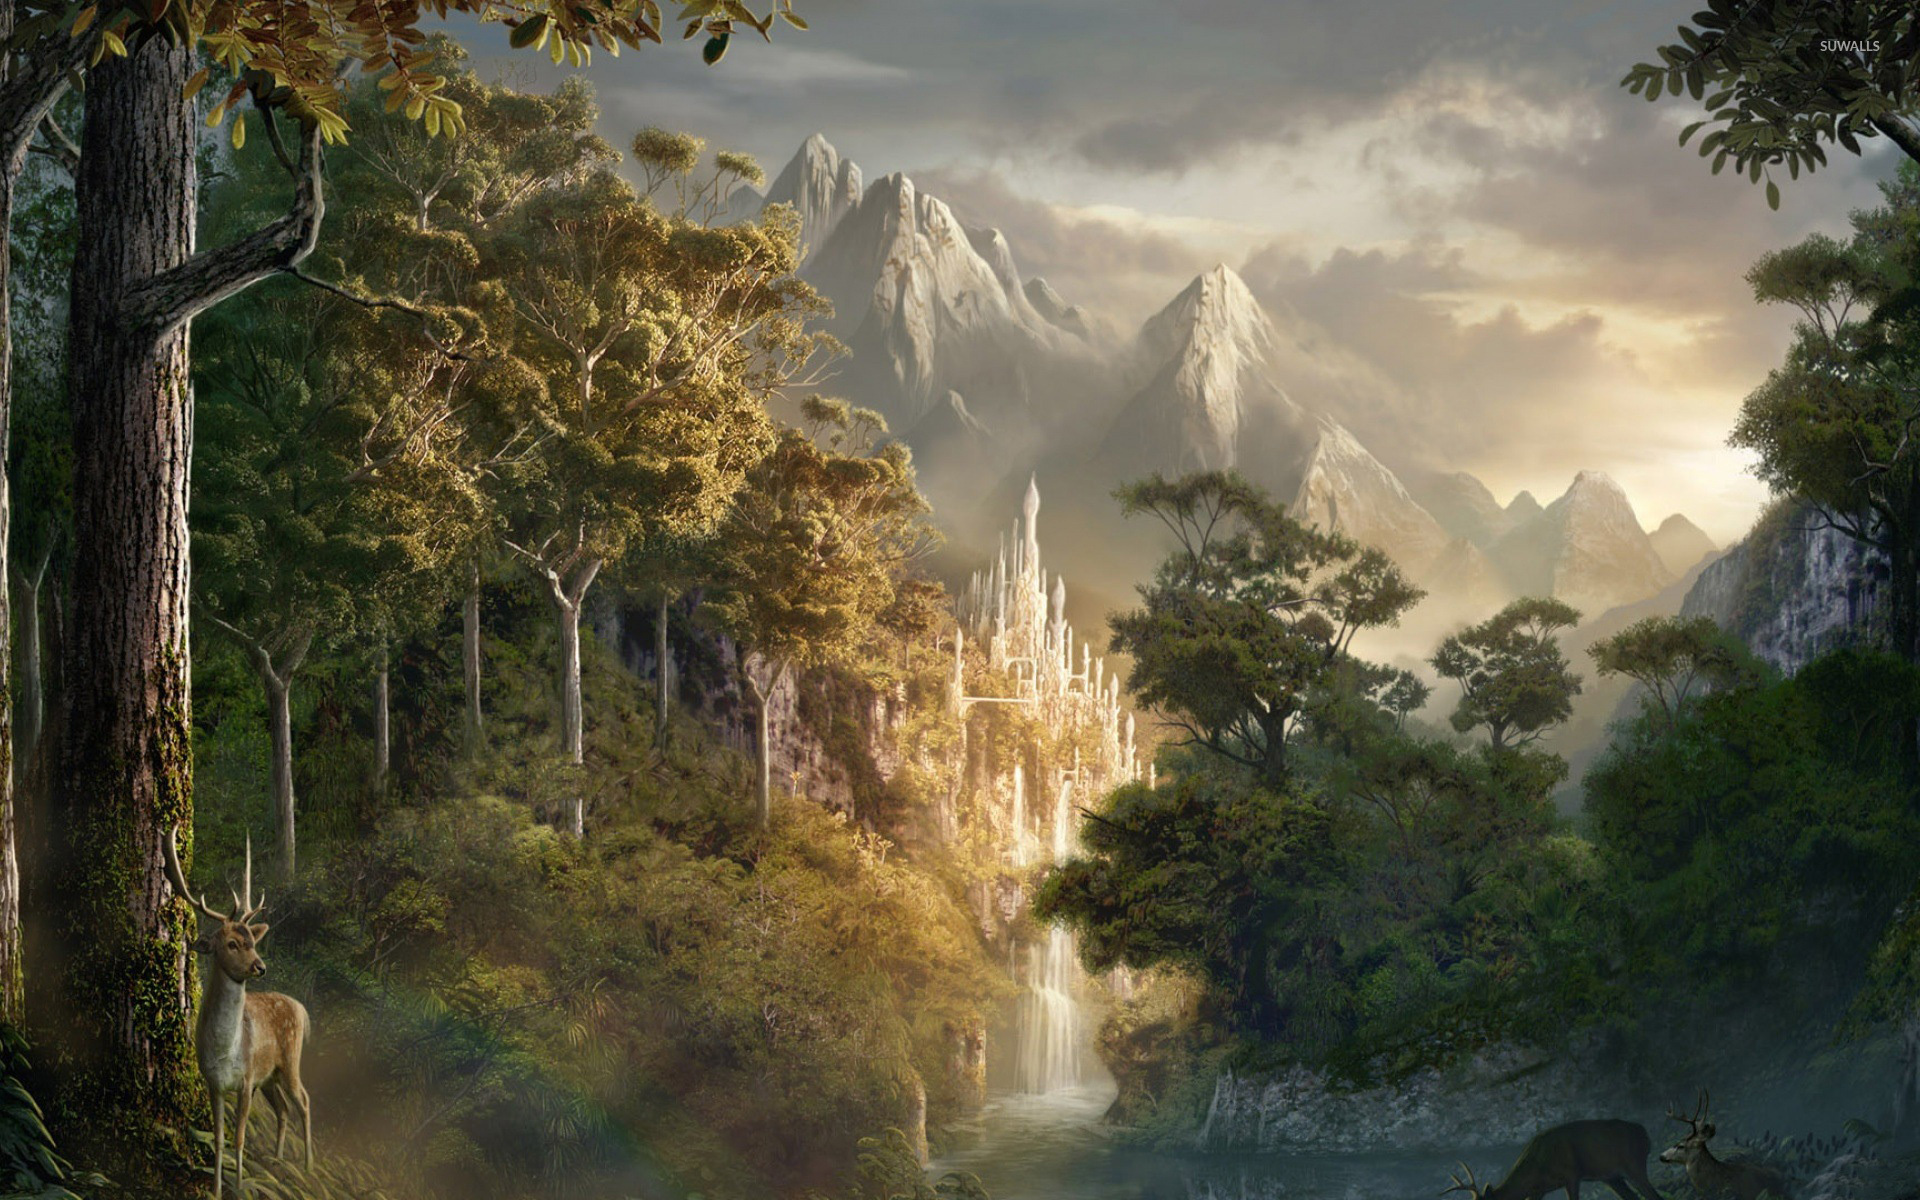 Wonderful Wallpaper Mountain Fantasy - castle-in-the-mountains-4381-1920x1200  Collection_88269.jpg